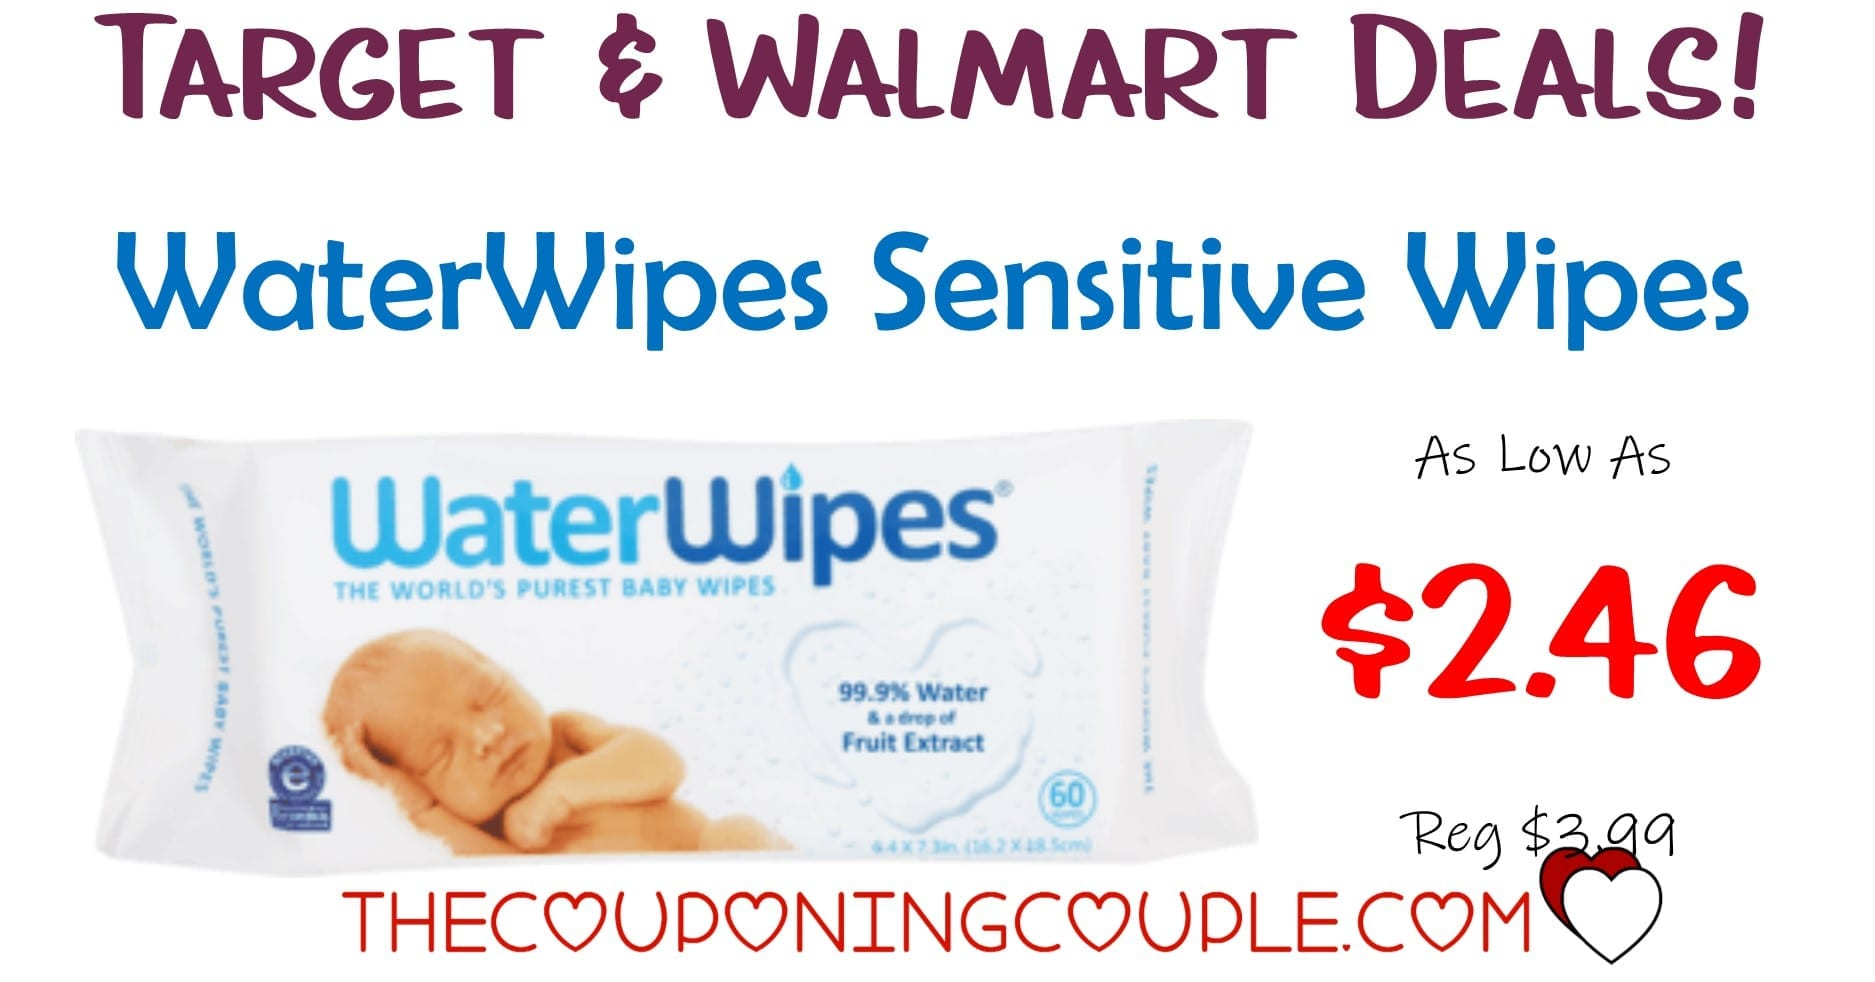 Target Baby Wipes Waterwipes Sensitive Baby Wipes With Target And Walmart Deals